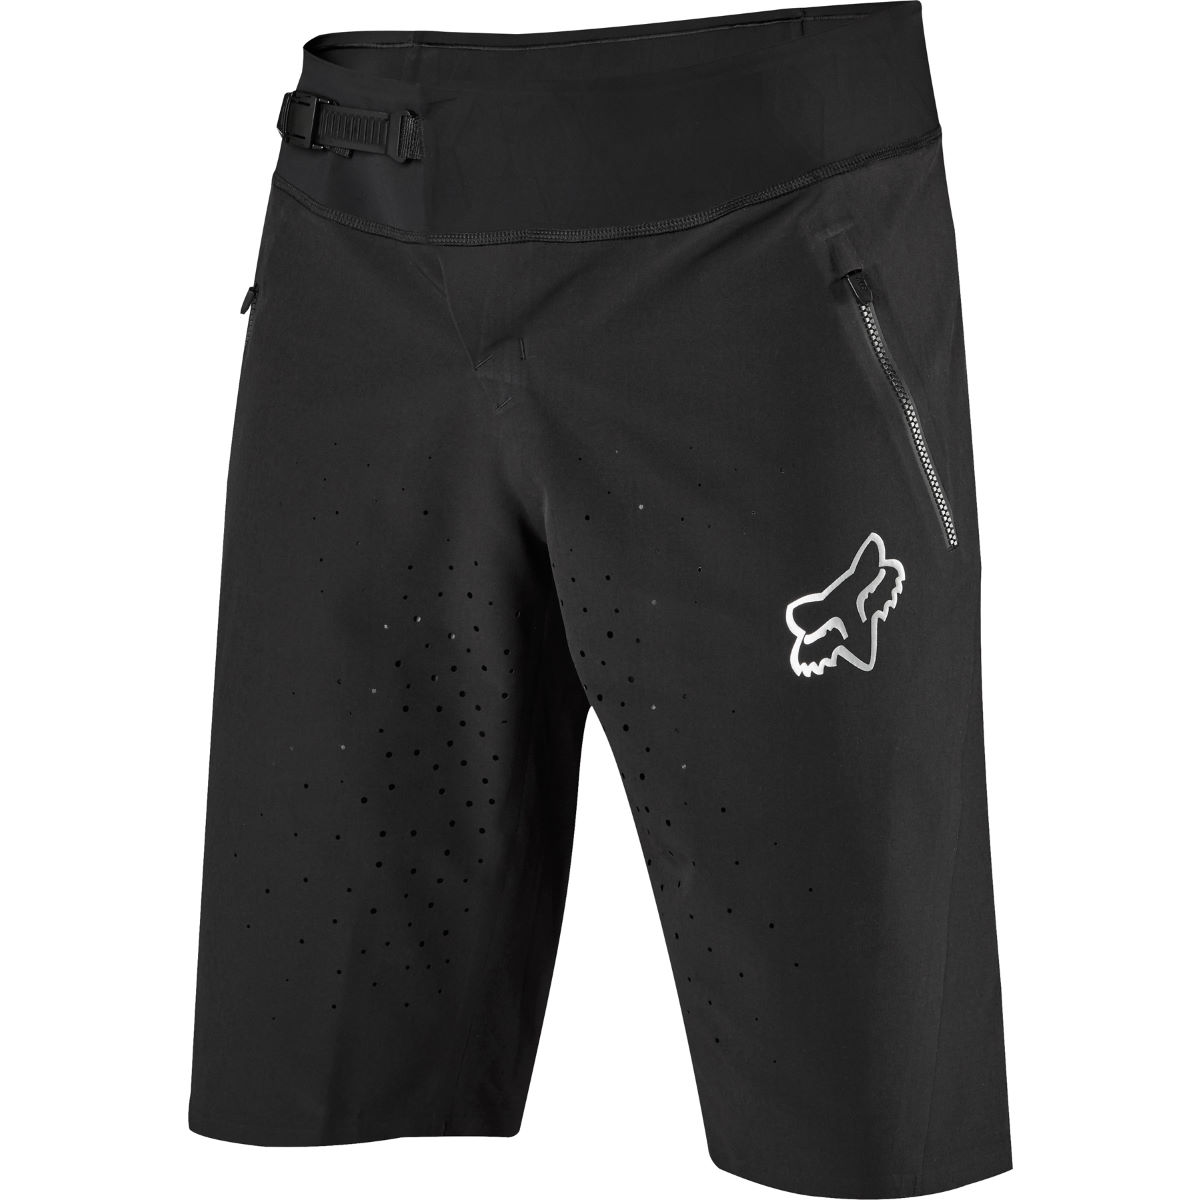 Fox Racing Attack Pro Shorts - 28 Black/Chrome | Baggy Cycling Shorts